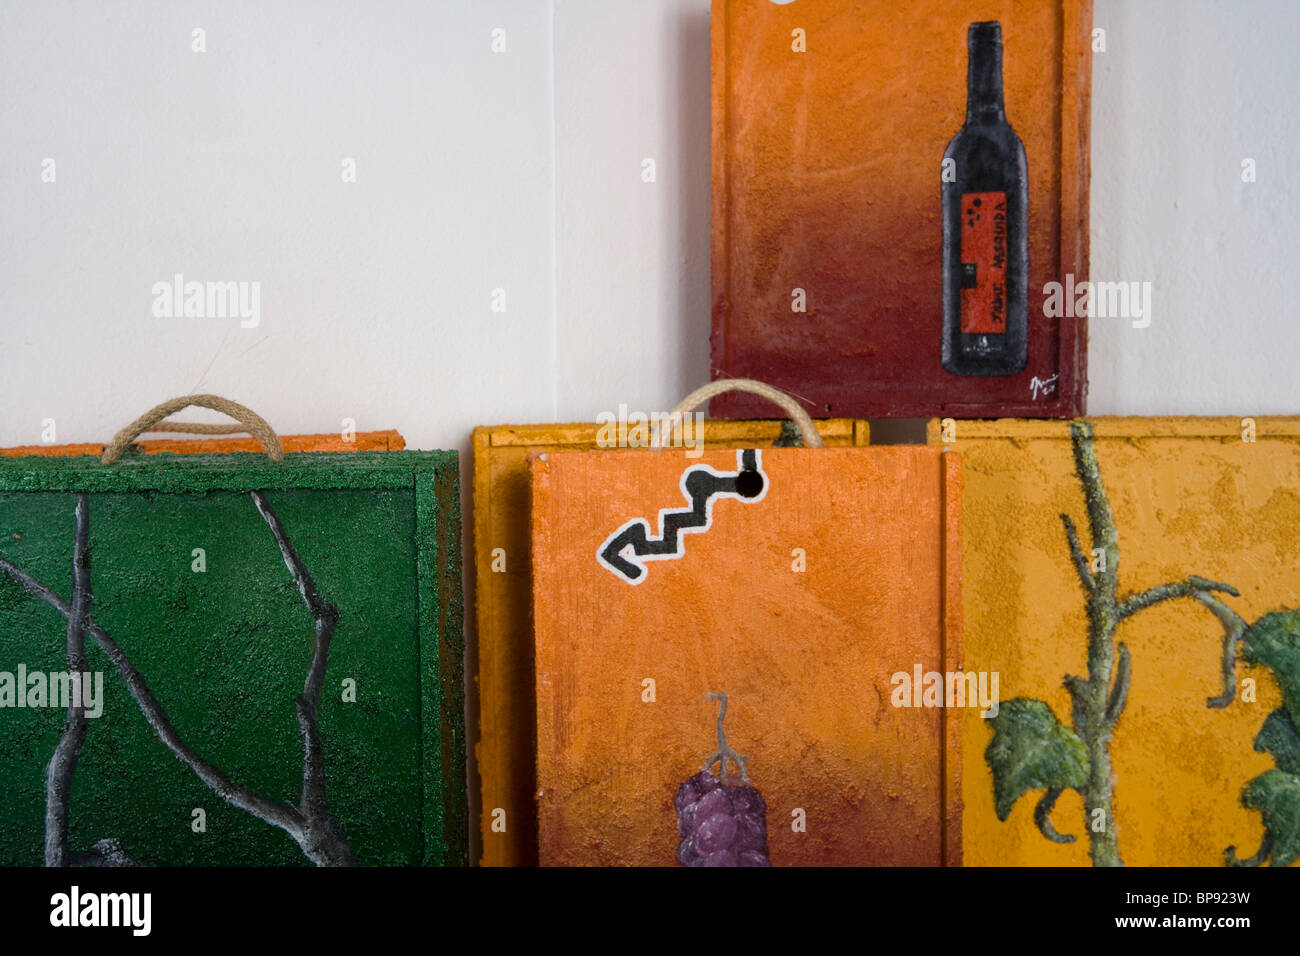 Artful wine boxes in Bodega Jaume Mesquida Winery, Porreres, Mallorca, Balearic Islands, Spain, Europe - Stock Image